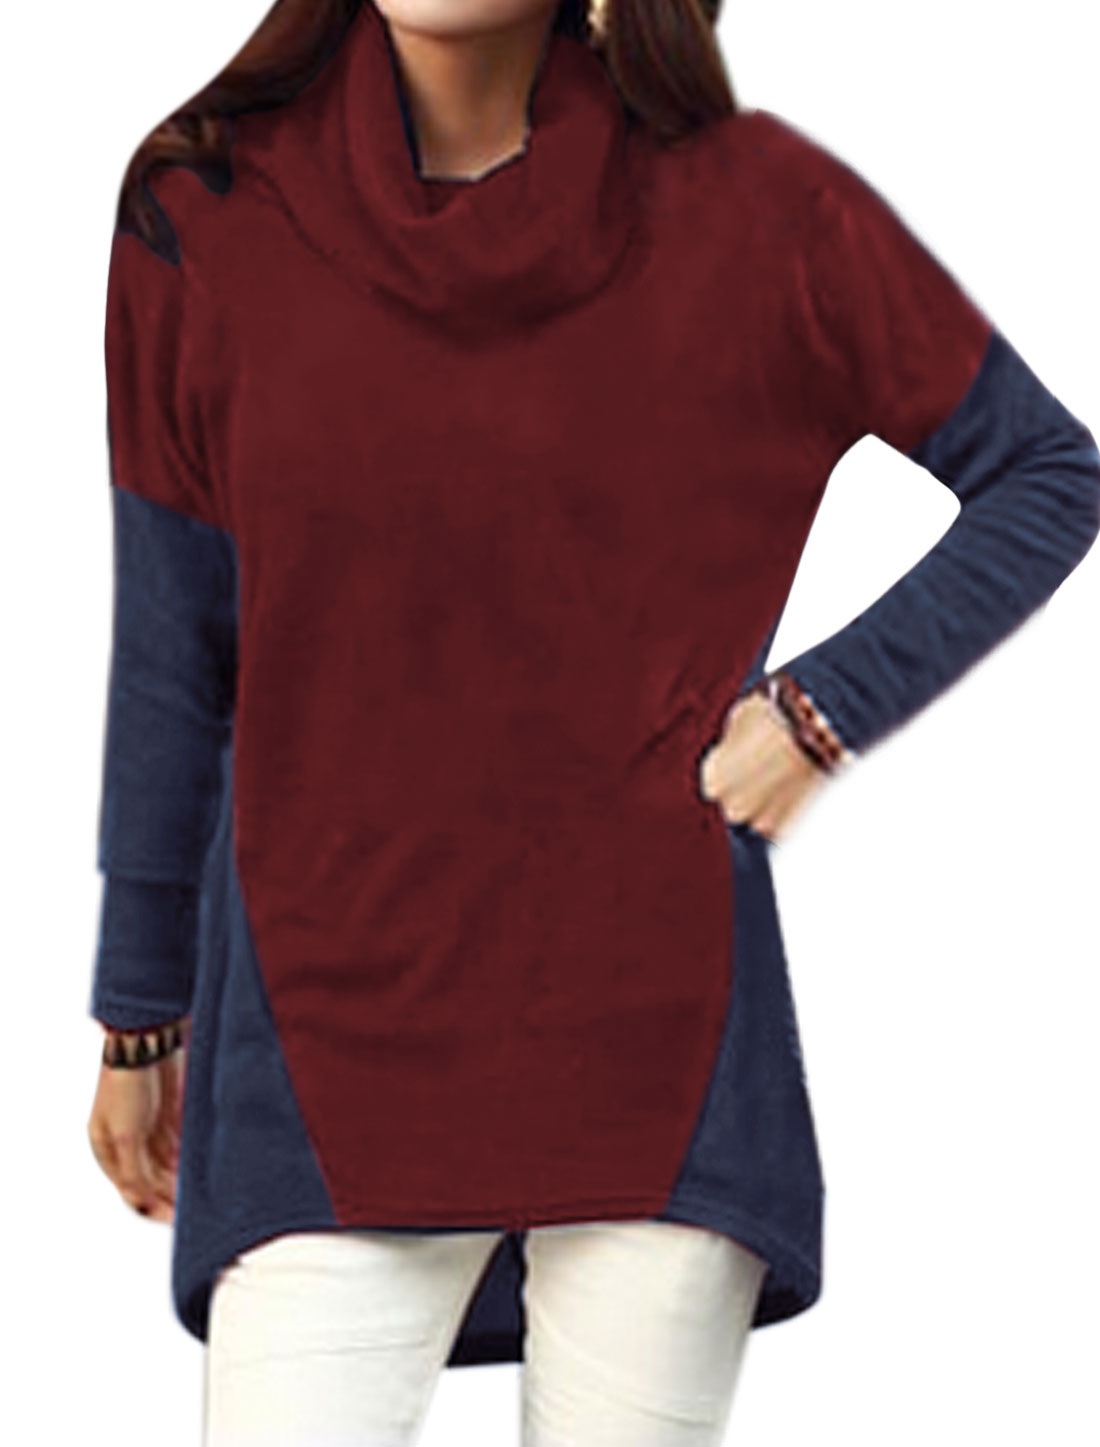 Women Batwing Sleeves Color Block High Low Hem Casual Tunic T-Shirt Red Blue S